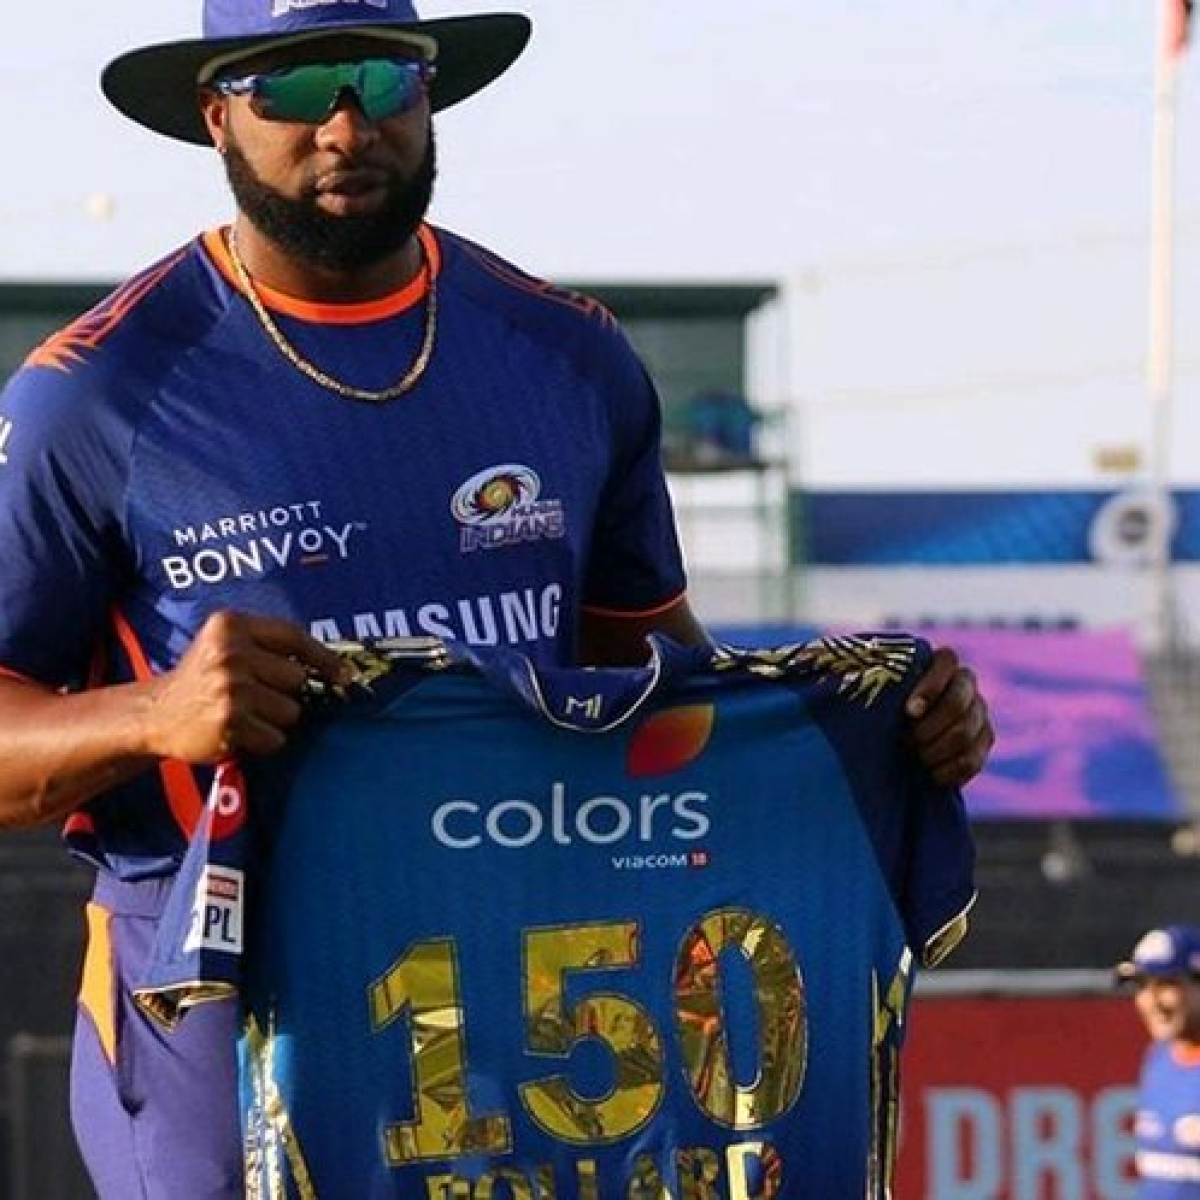 Suryakumar Yadav must be disappointed to not have donned blue for India, says Kieron Pollard